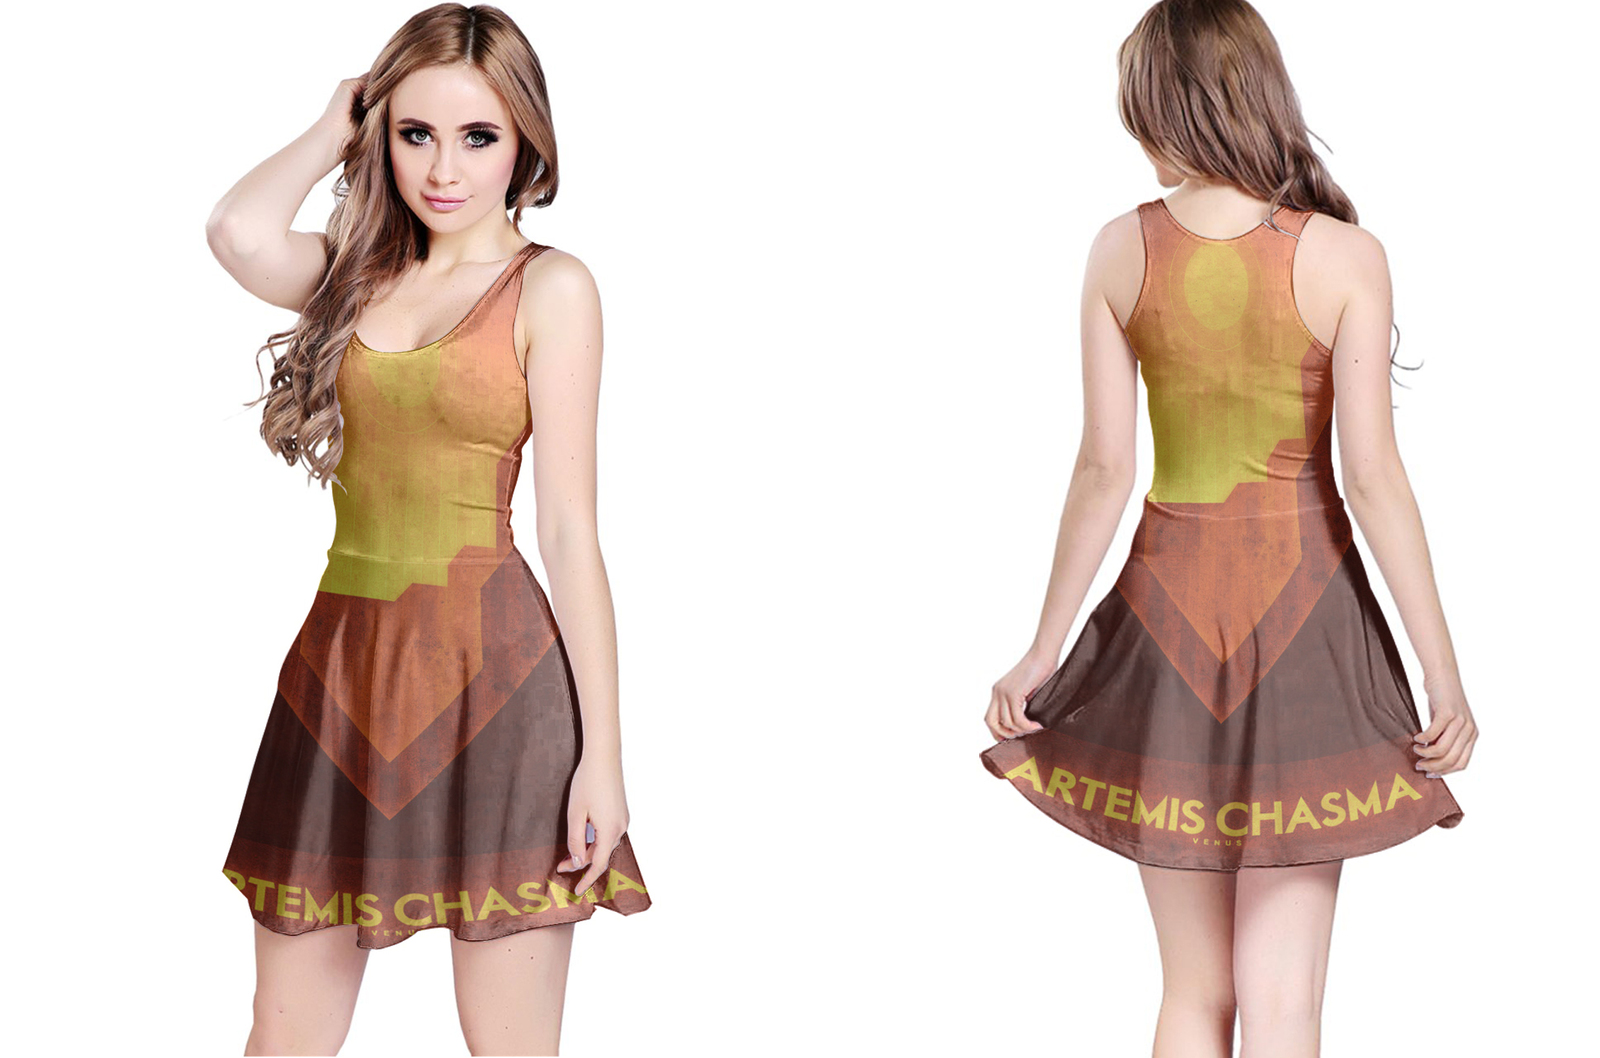 Venus artemis chasma reversible dress